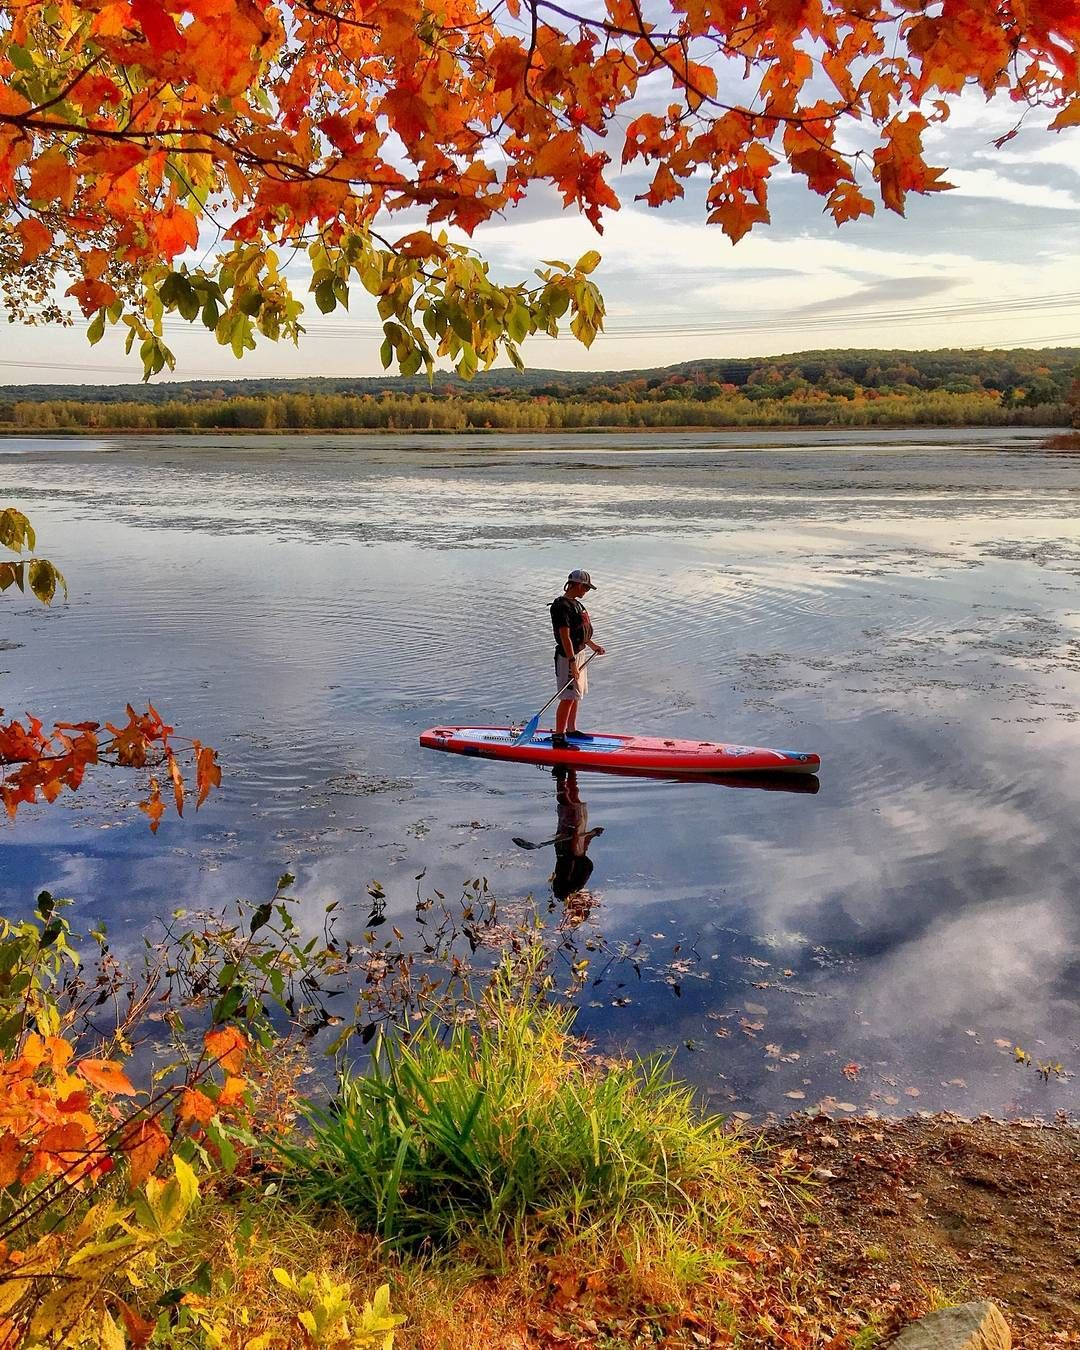 """""""Took my son Chase out for a fall paddle-fishing adventure in Grafton Massachusetts. Leaves are just getting into peak now!"""" -Casi Rynkowski @bicsup"""